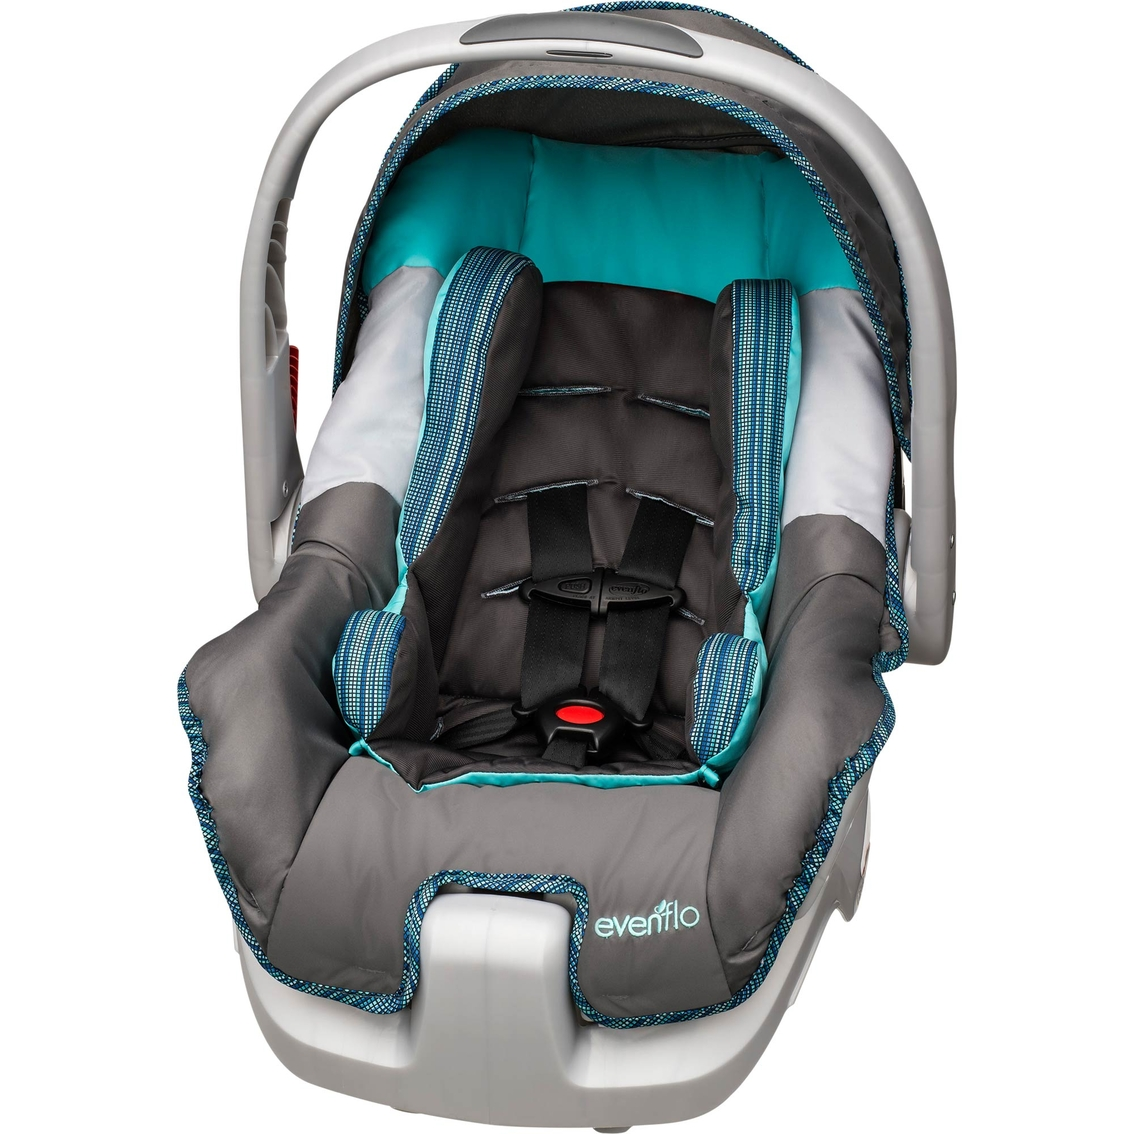 evenflo nurture deluxe infant car seat infant seats baby toys shop the exchange. Black Bedroom Furniture Sets. Home Design Ideas